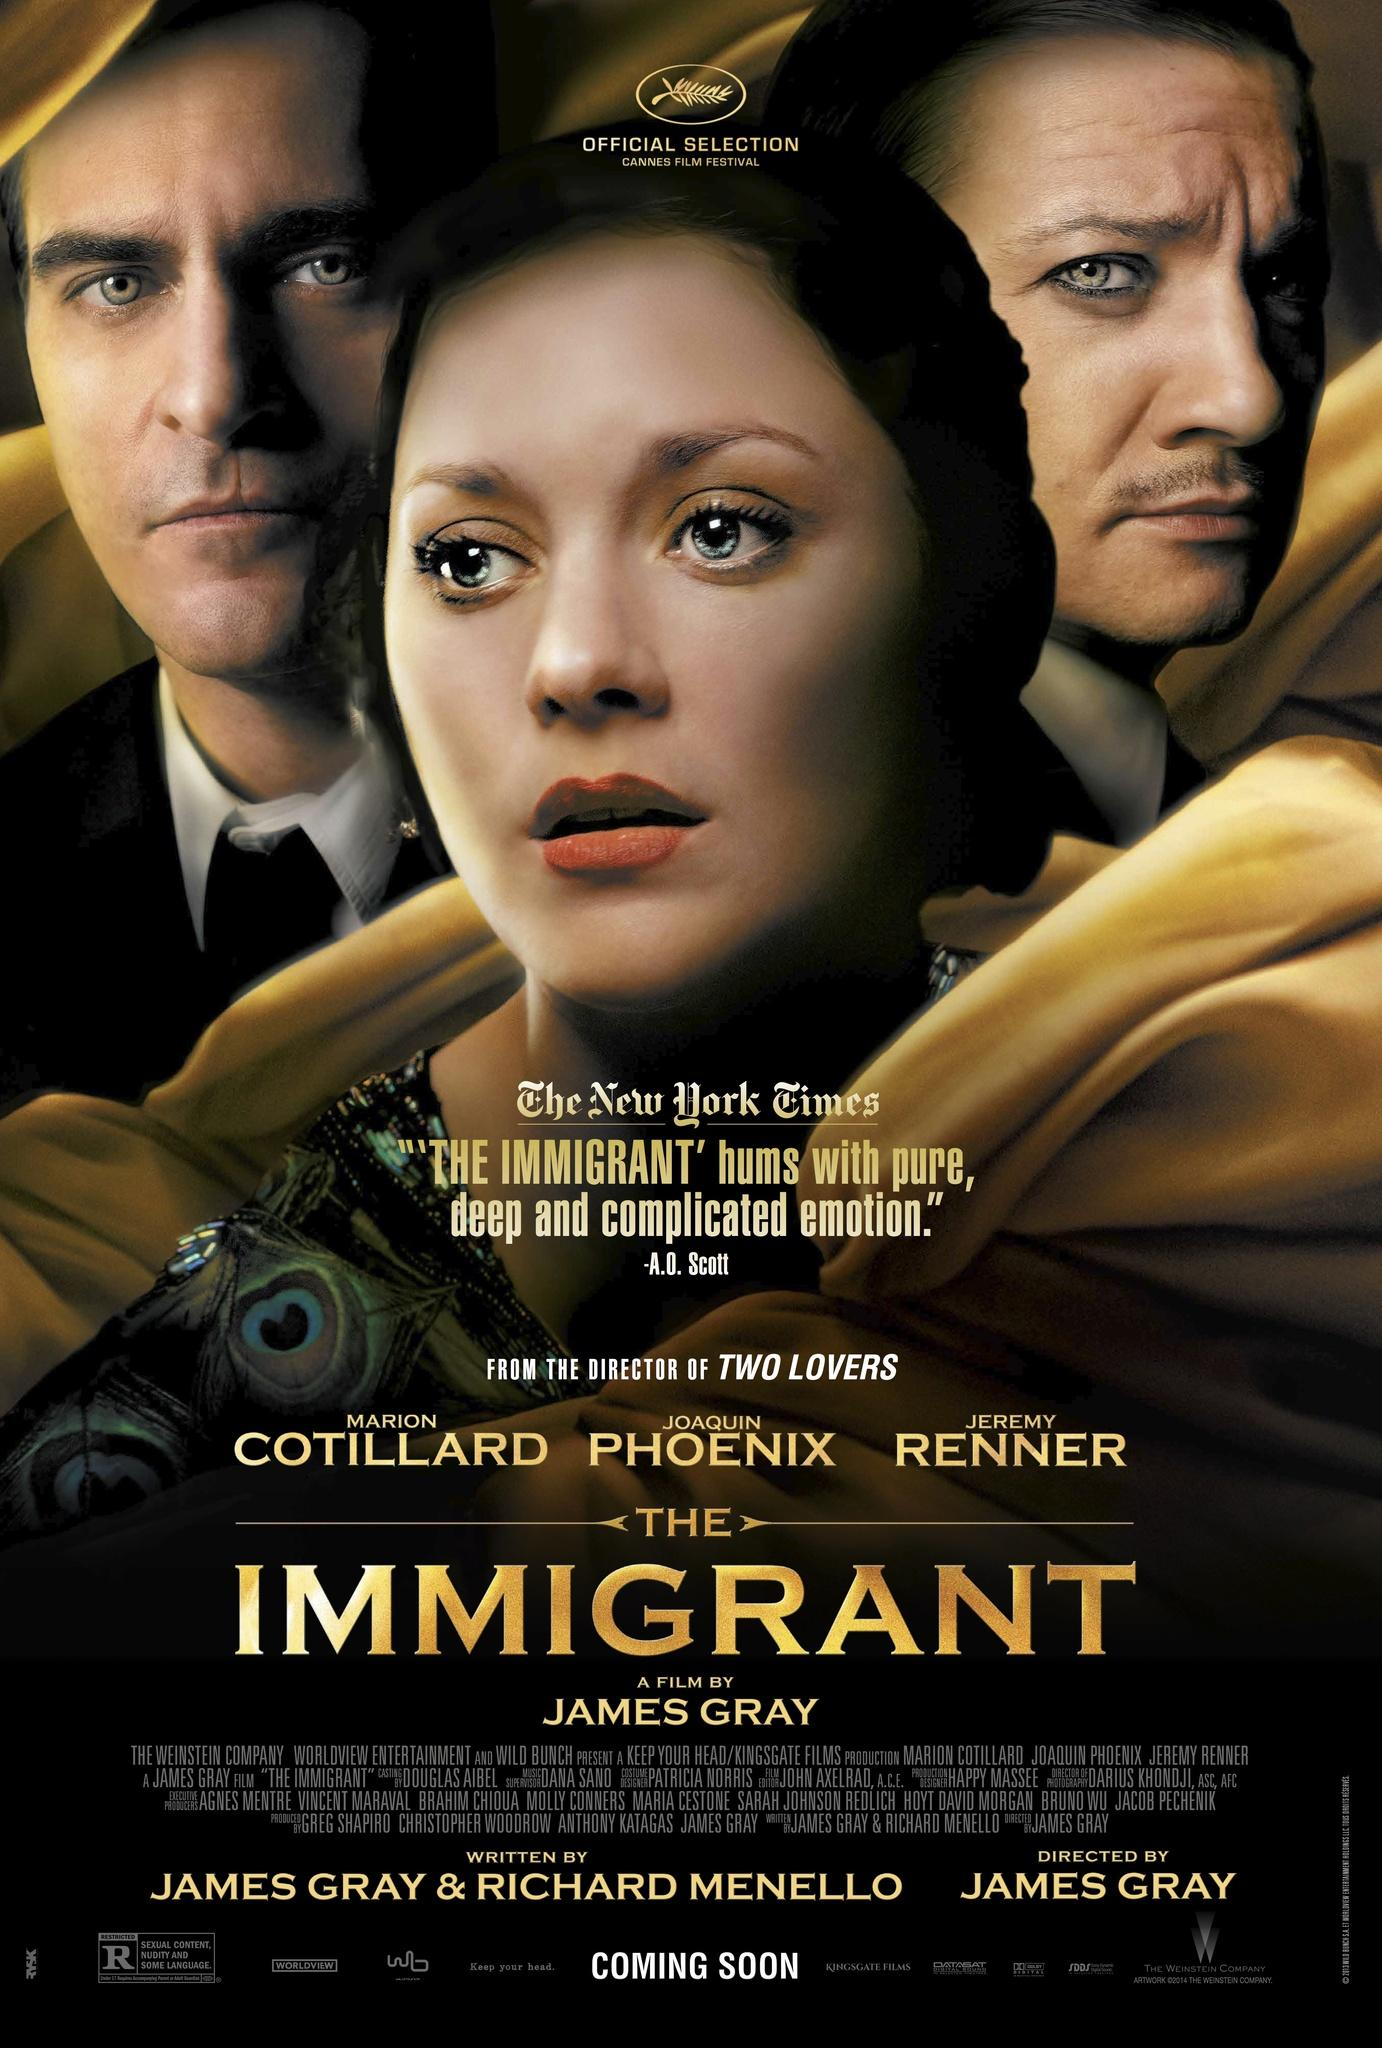 ImmigrantPóster